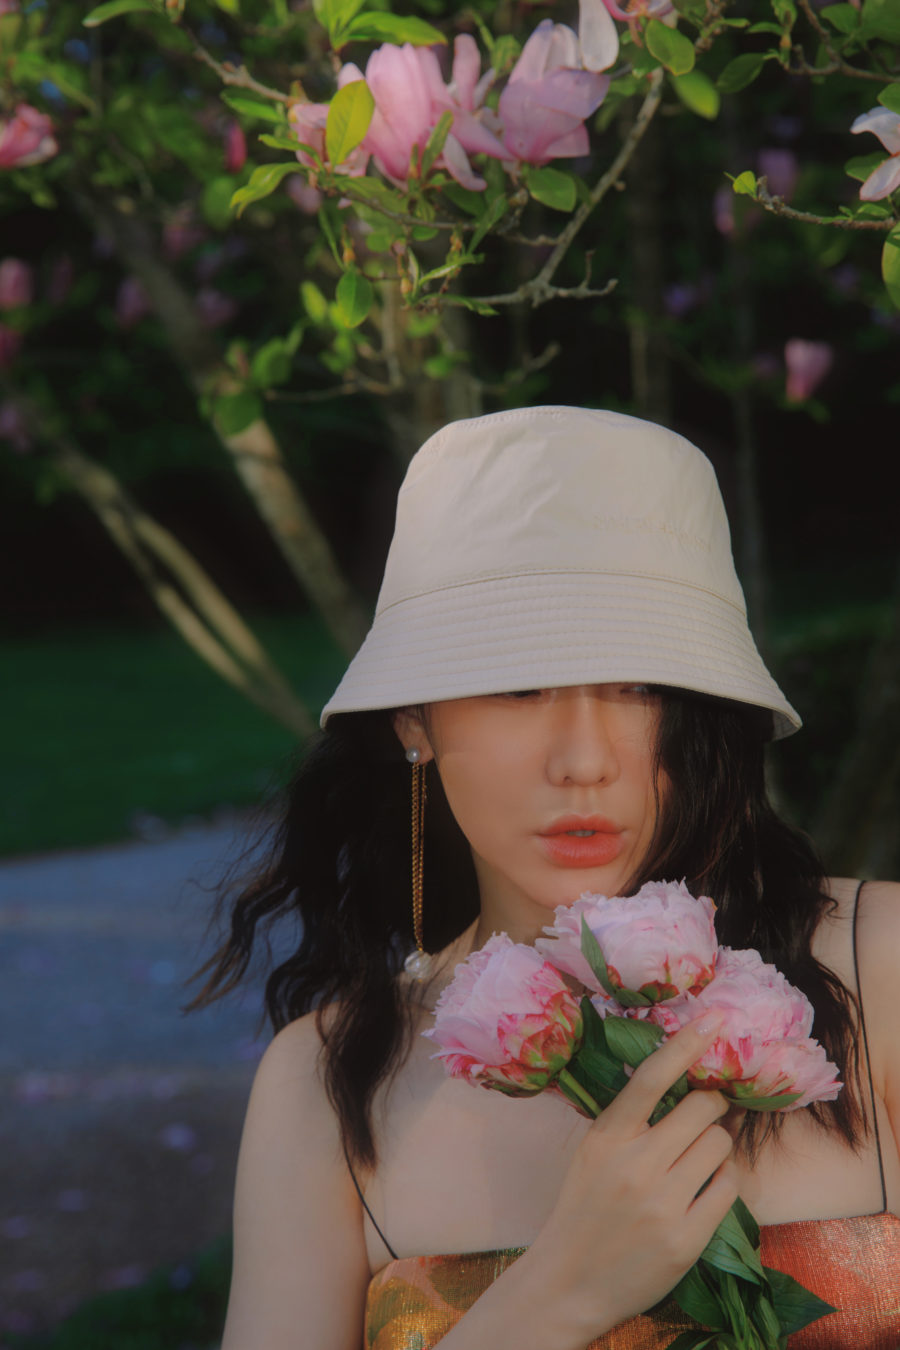 jessica wang wearing a bucket hat and flowers while sharing last minute mother's day gifts at luisaviaroma // Jessica Wang - Notjessfashion.com